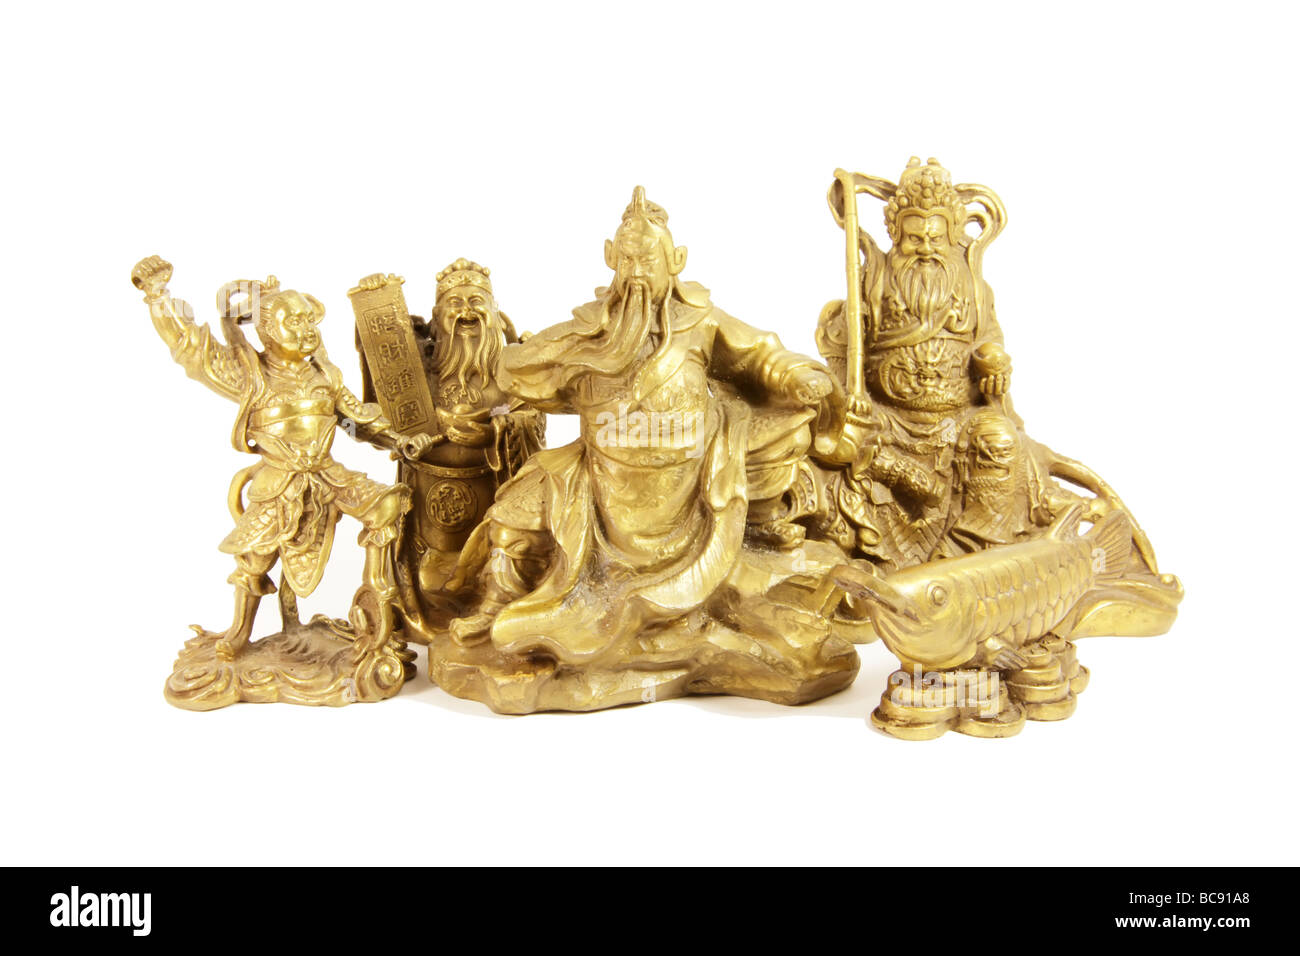 Chinese Deities and Gods in Brass Statues - Stock Image